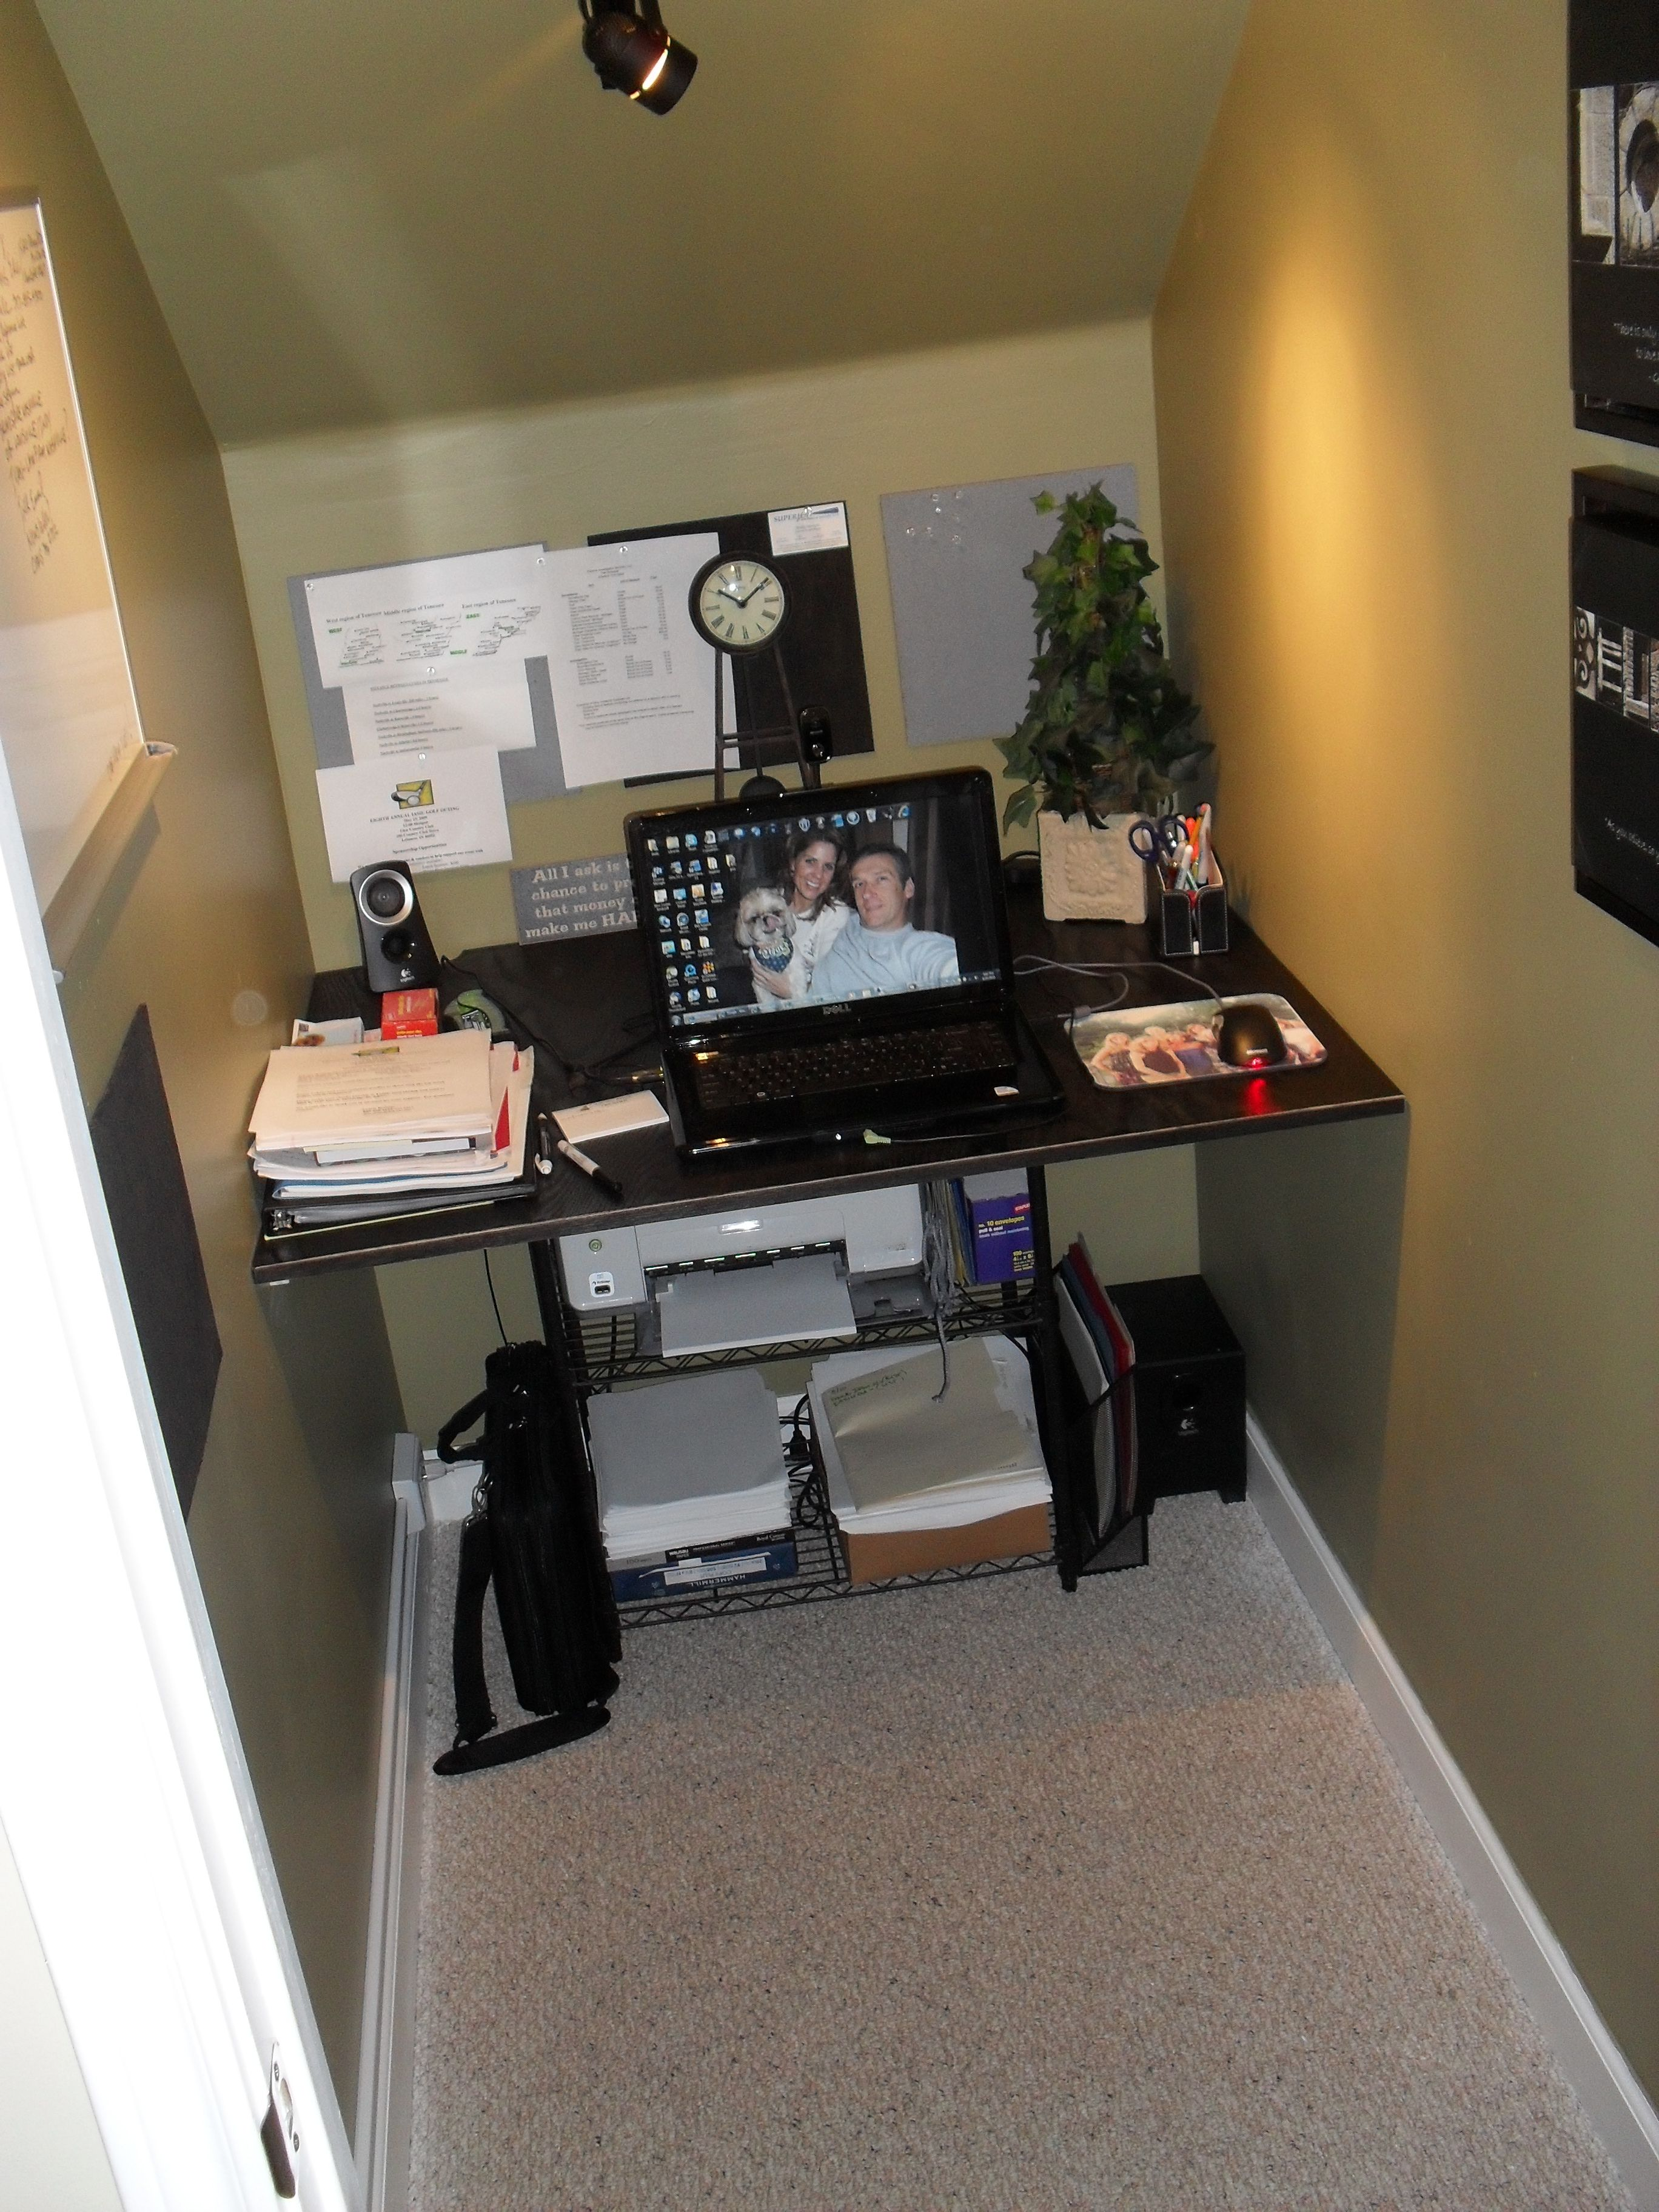 Closet Under Stairs Converted To Office Space Room Under